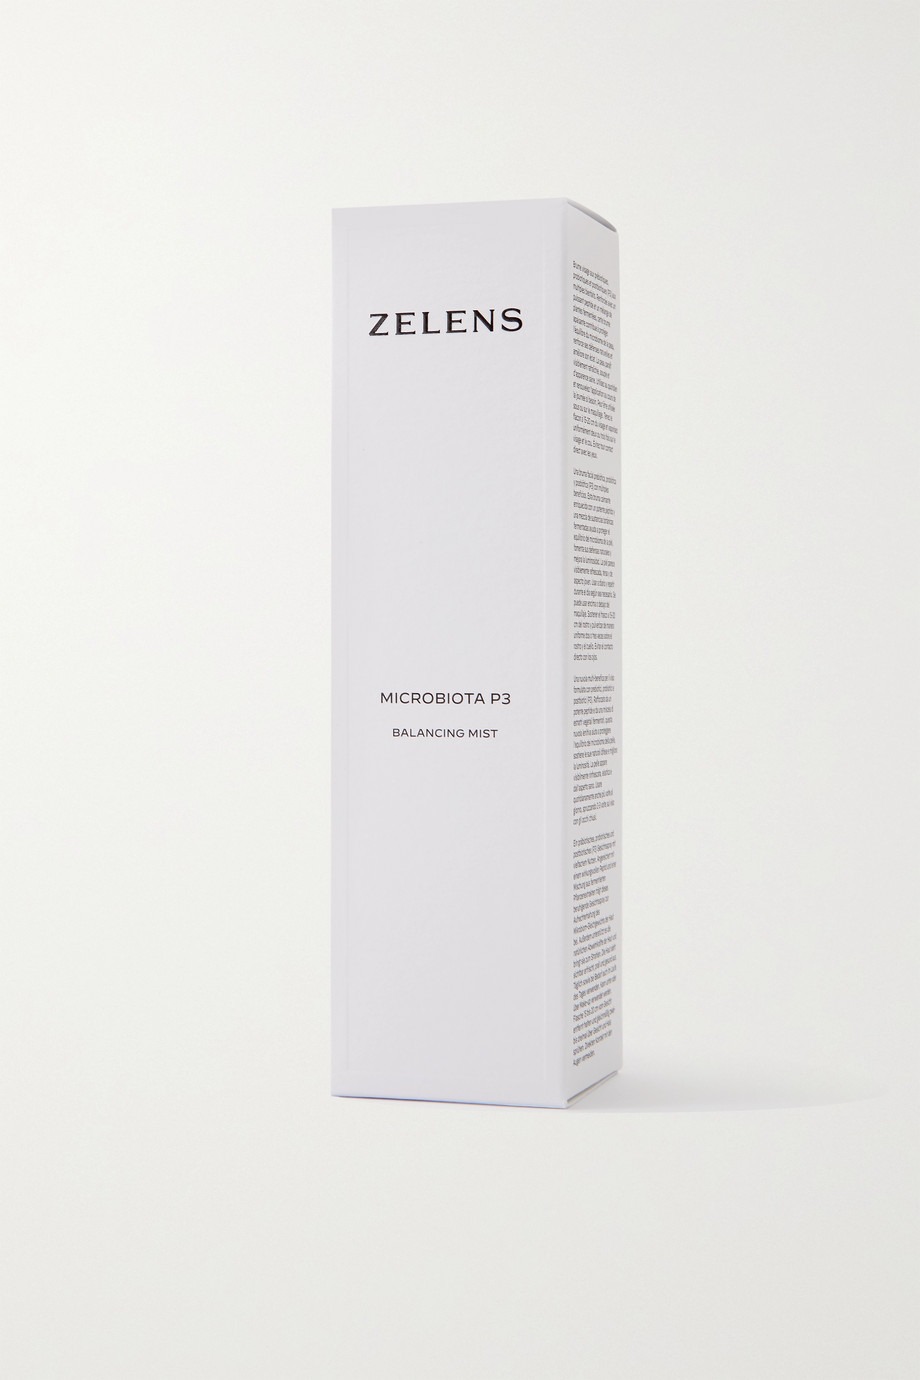 Zelens PROVITAMIN D Fortifying Facial Mist, 50ml